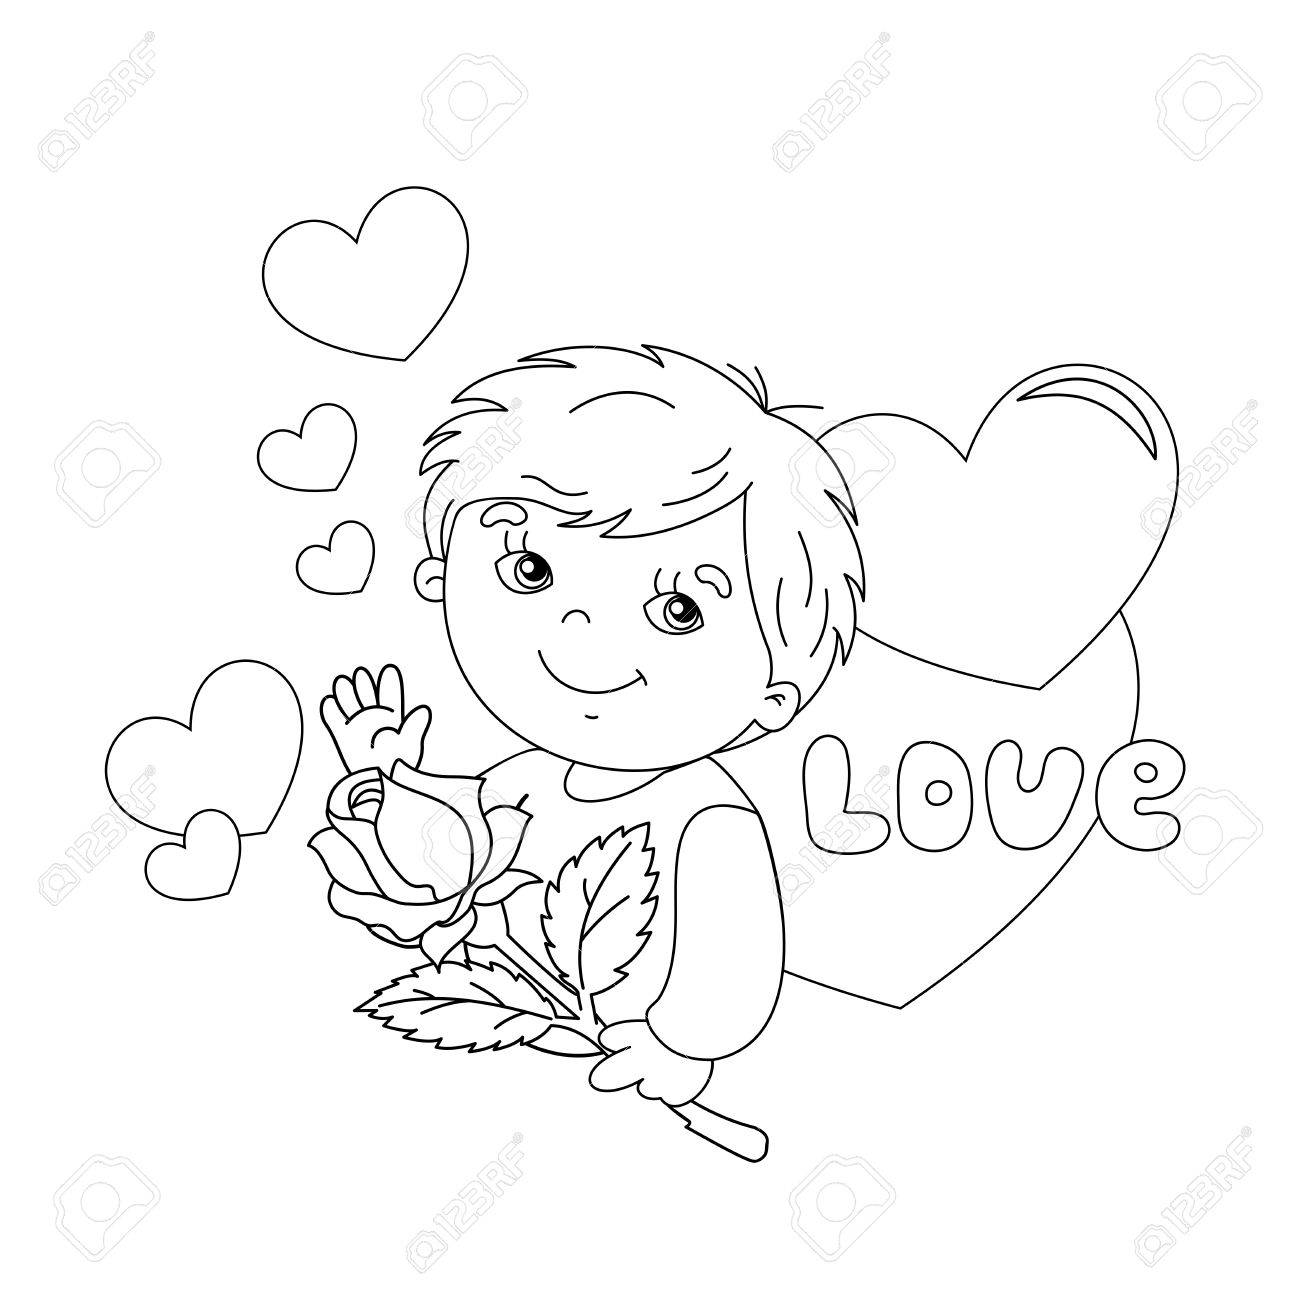 Coloring Page Outline Of Cute Boy With Rose In Hand With Hearts ...